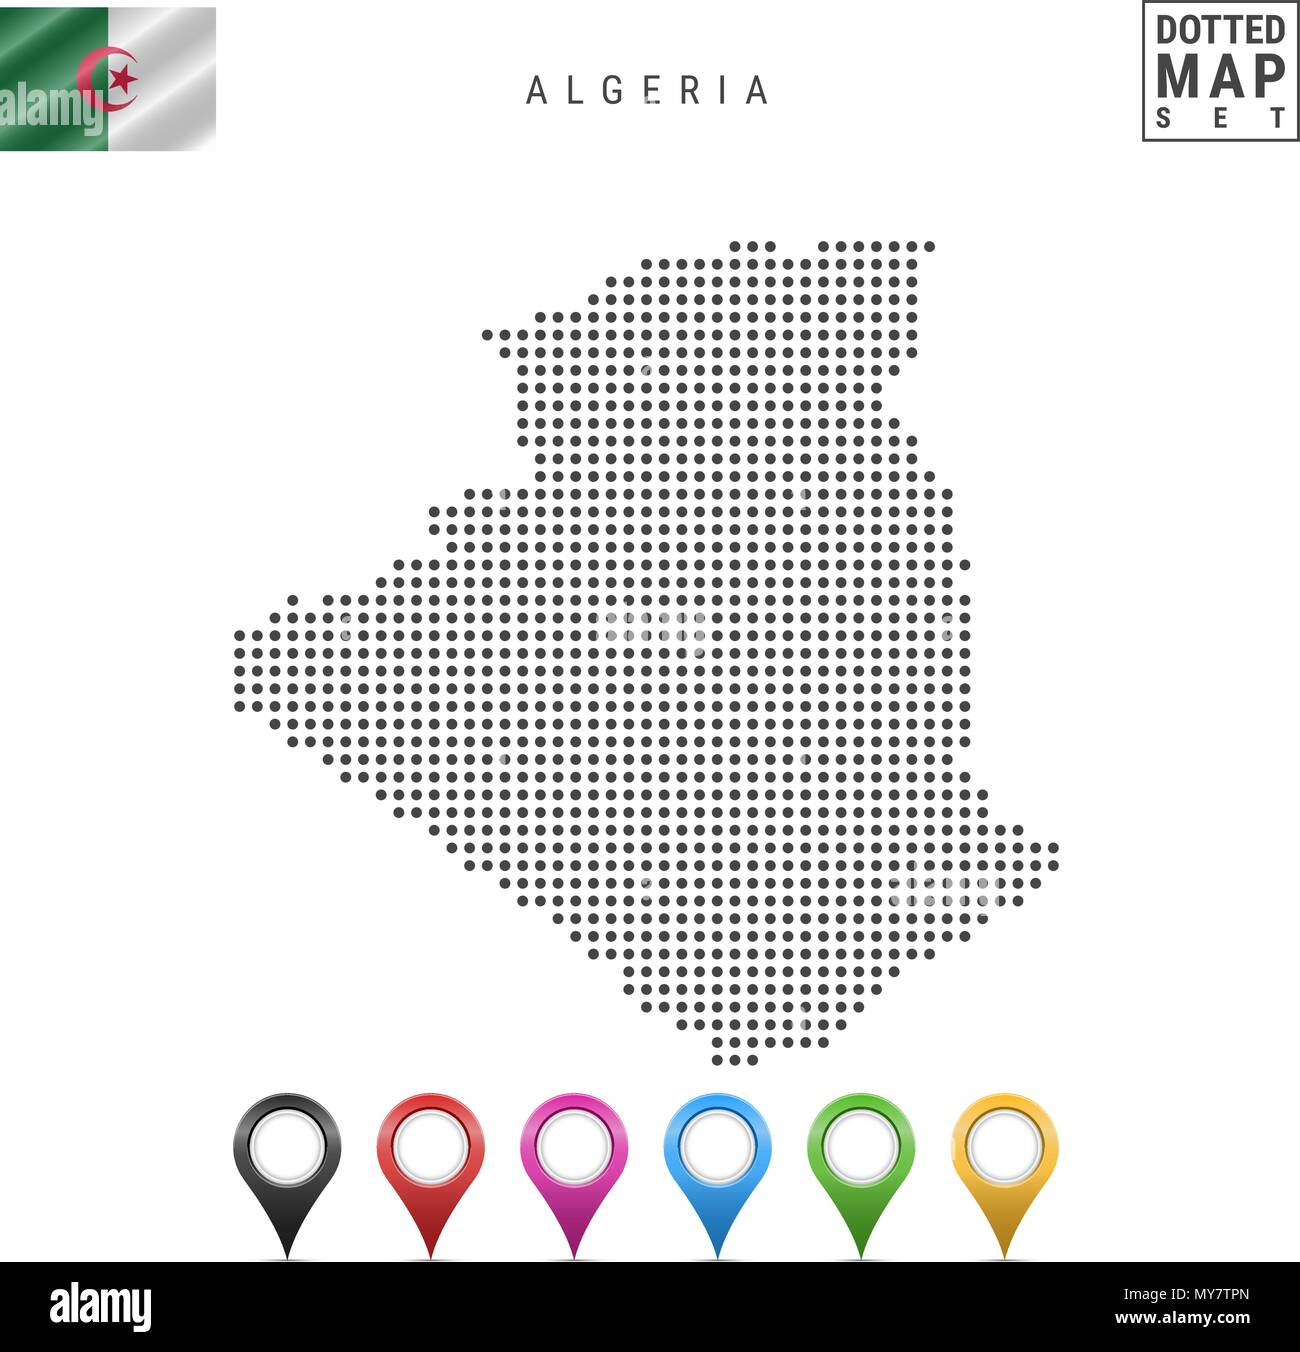 Vector Dotted Map of Algeria. Simple Silhouette of Algeria. National Flag of Algeria. Set of Multicolored Map Markers - Stock Vector